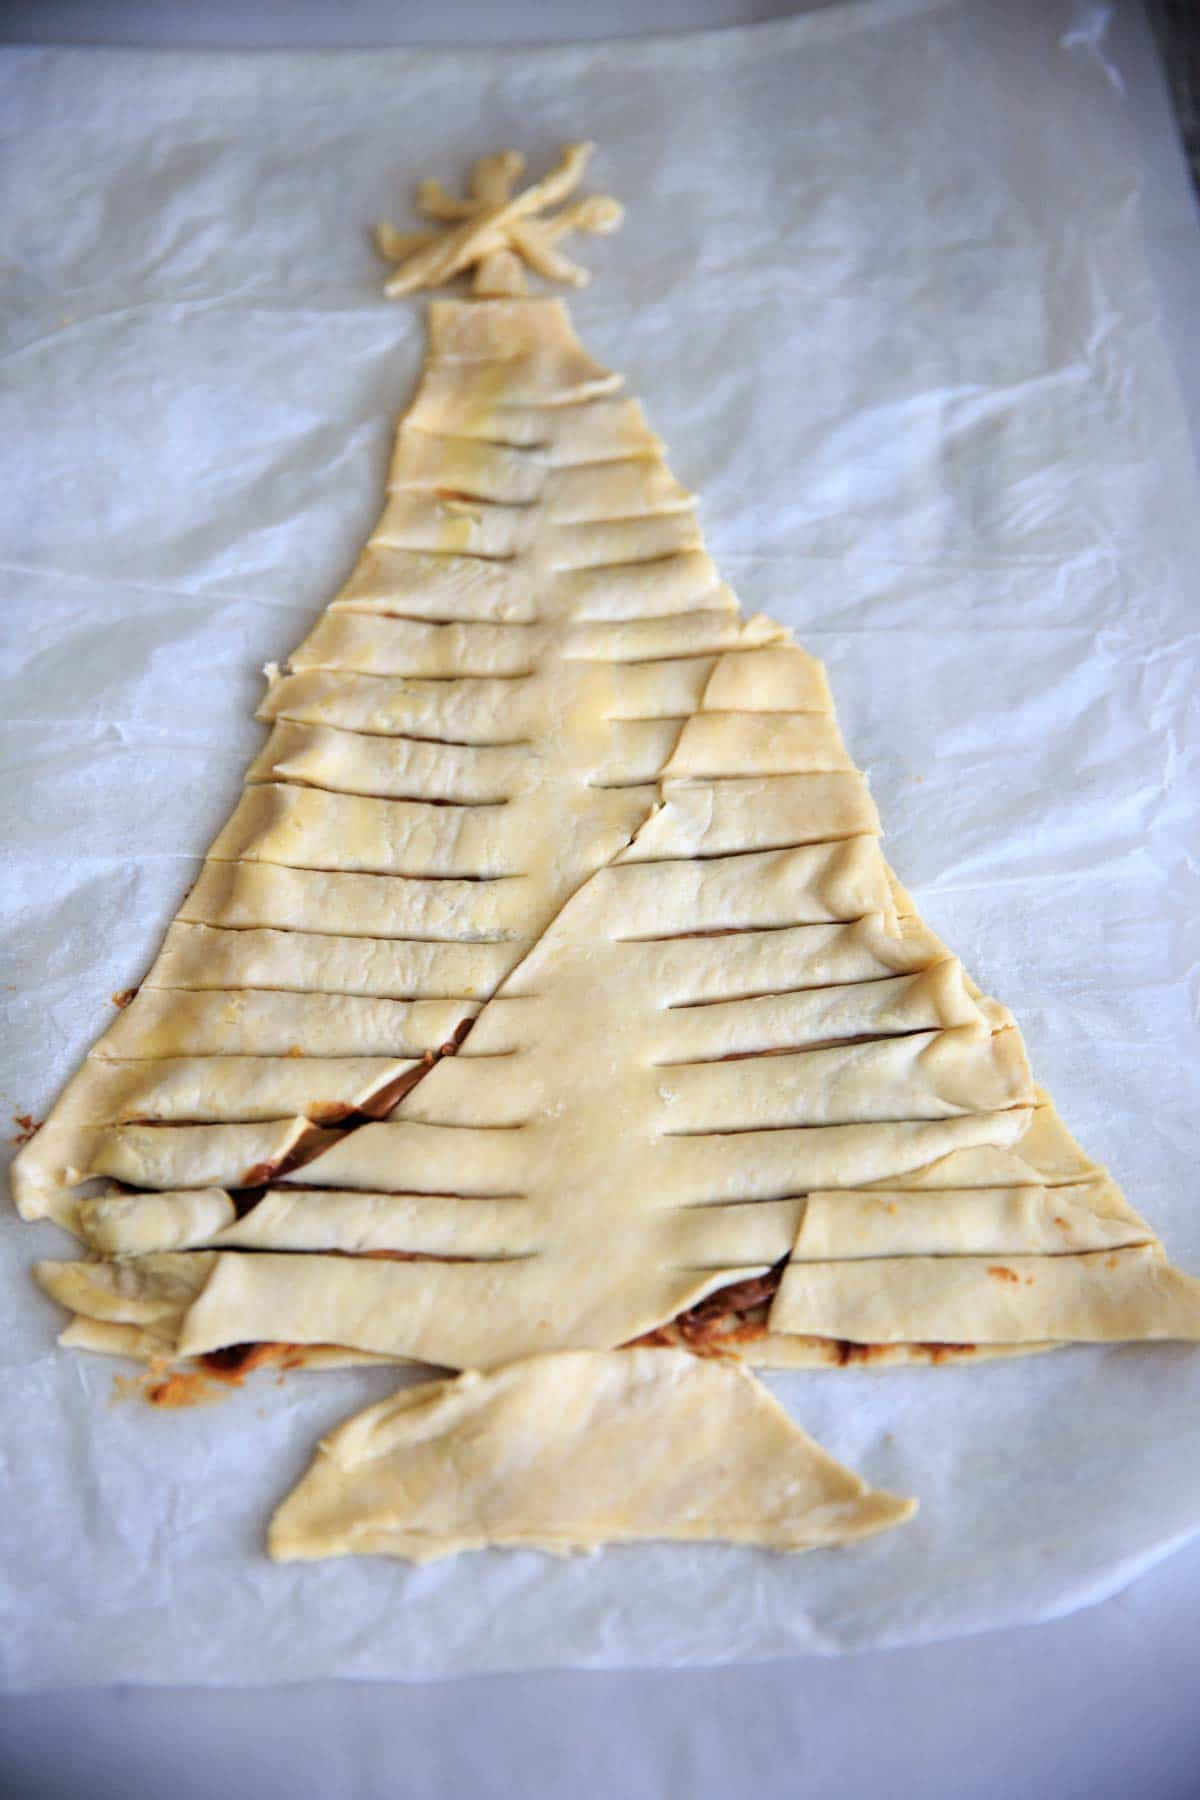 Cover with another layer of puff pastry and cut branches into pastry.